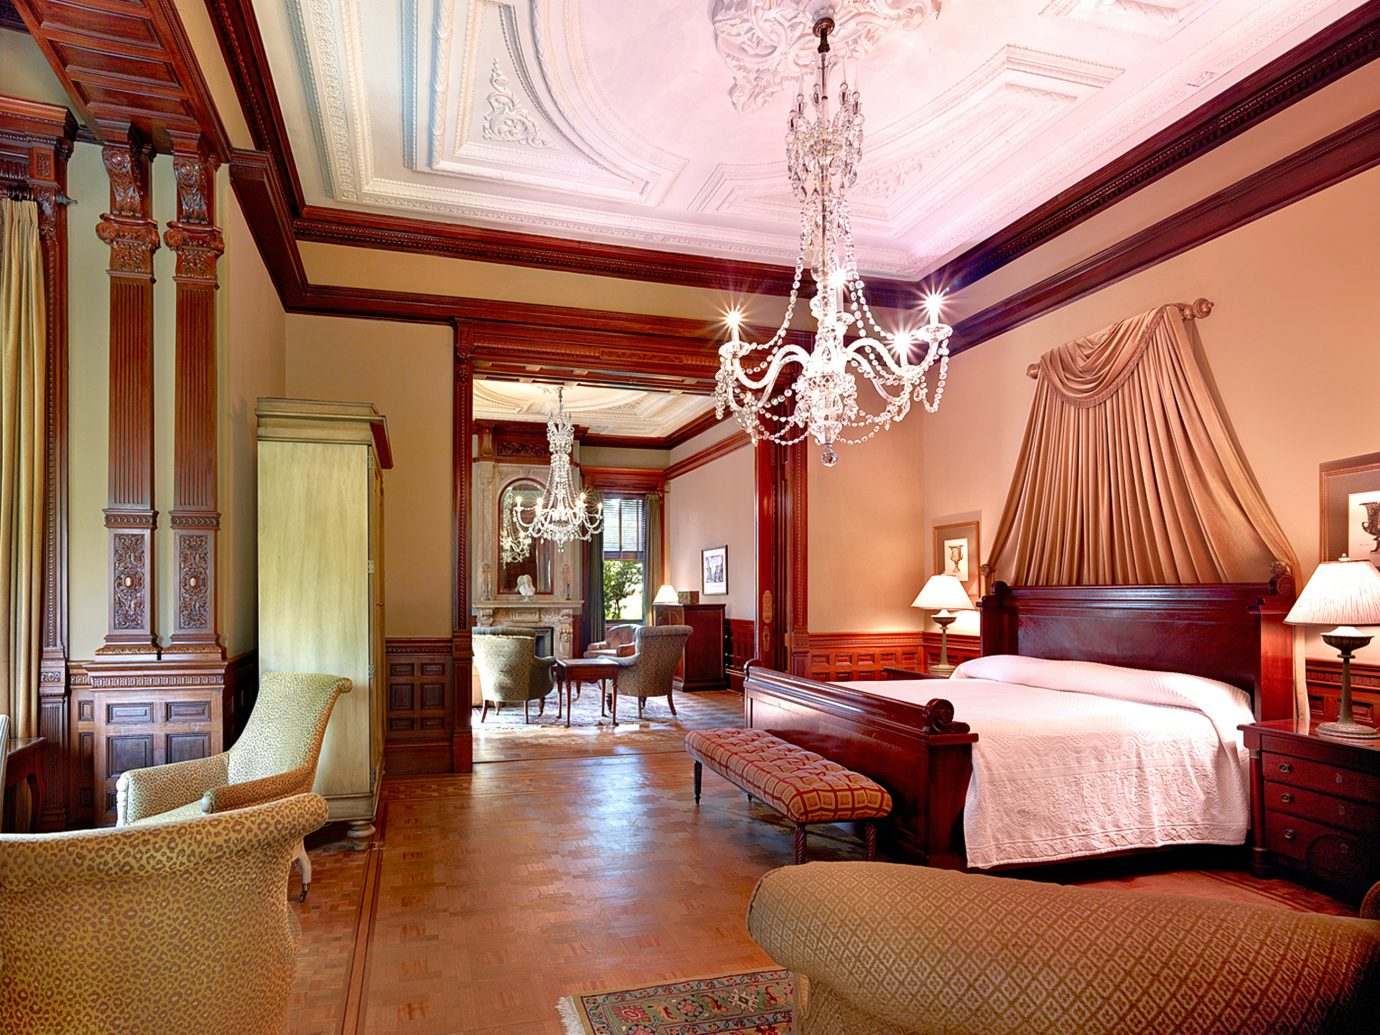 Bedroom Elegant Historic Hotels Modern Suite indoor room floor wall Living property living room estate home interior design real estate mansion furniture ceiling cottage decorated